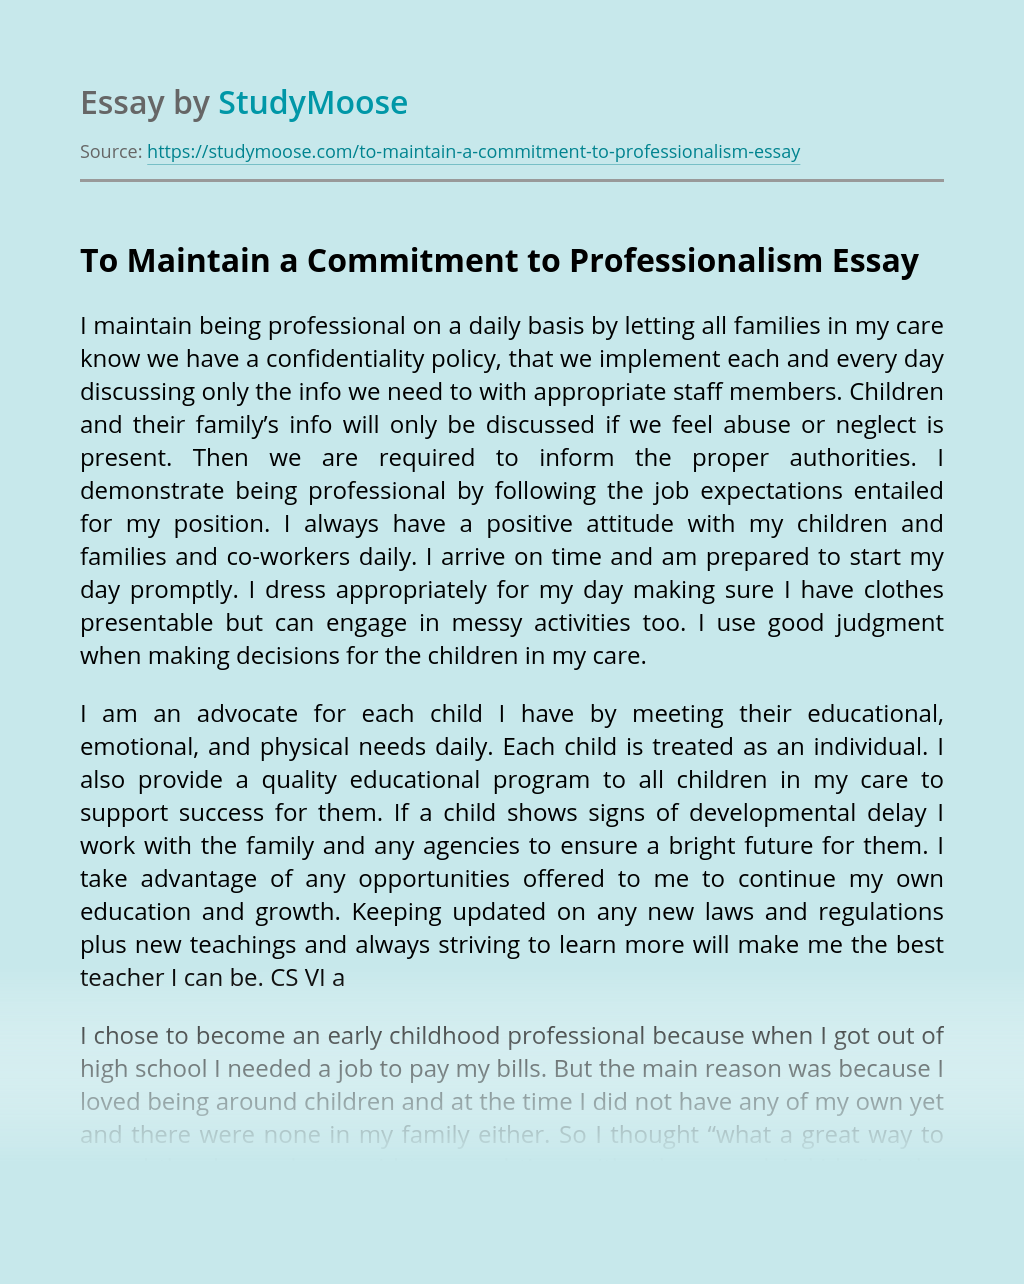 To Maintain a Commitment to Professionalism